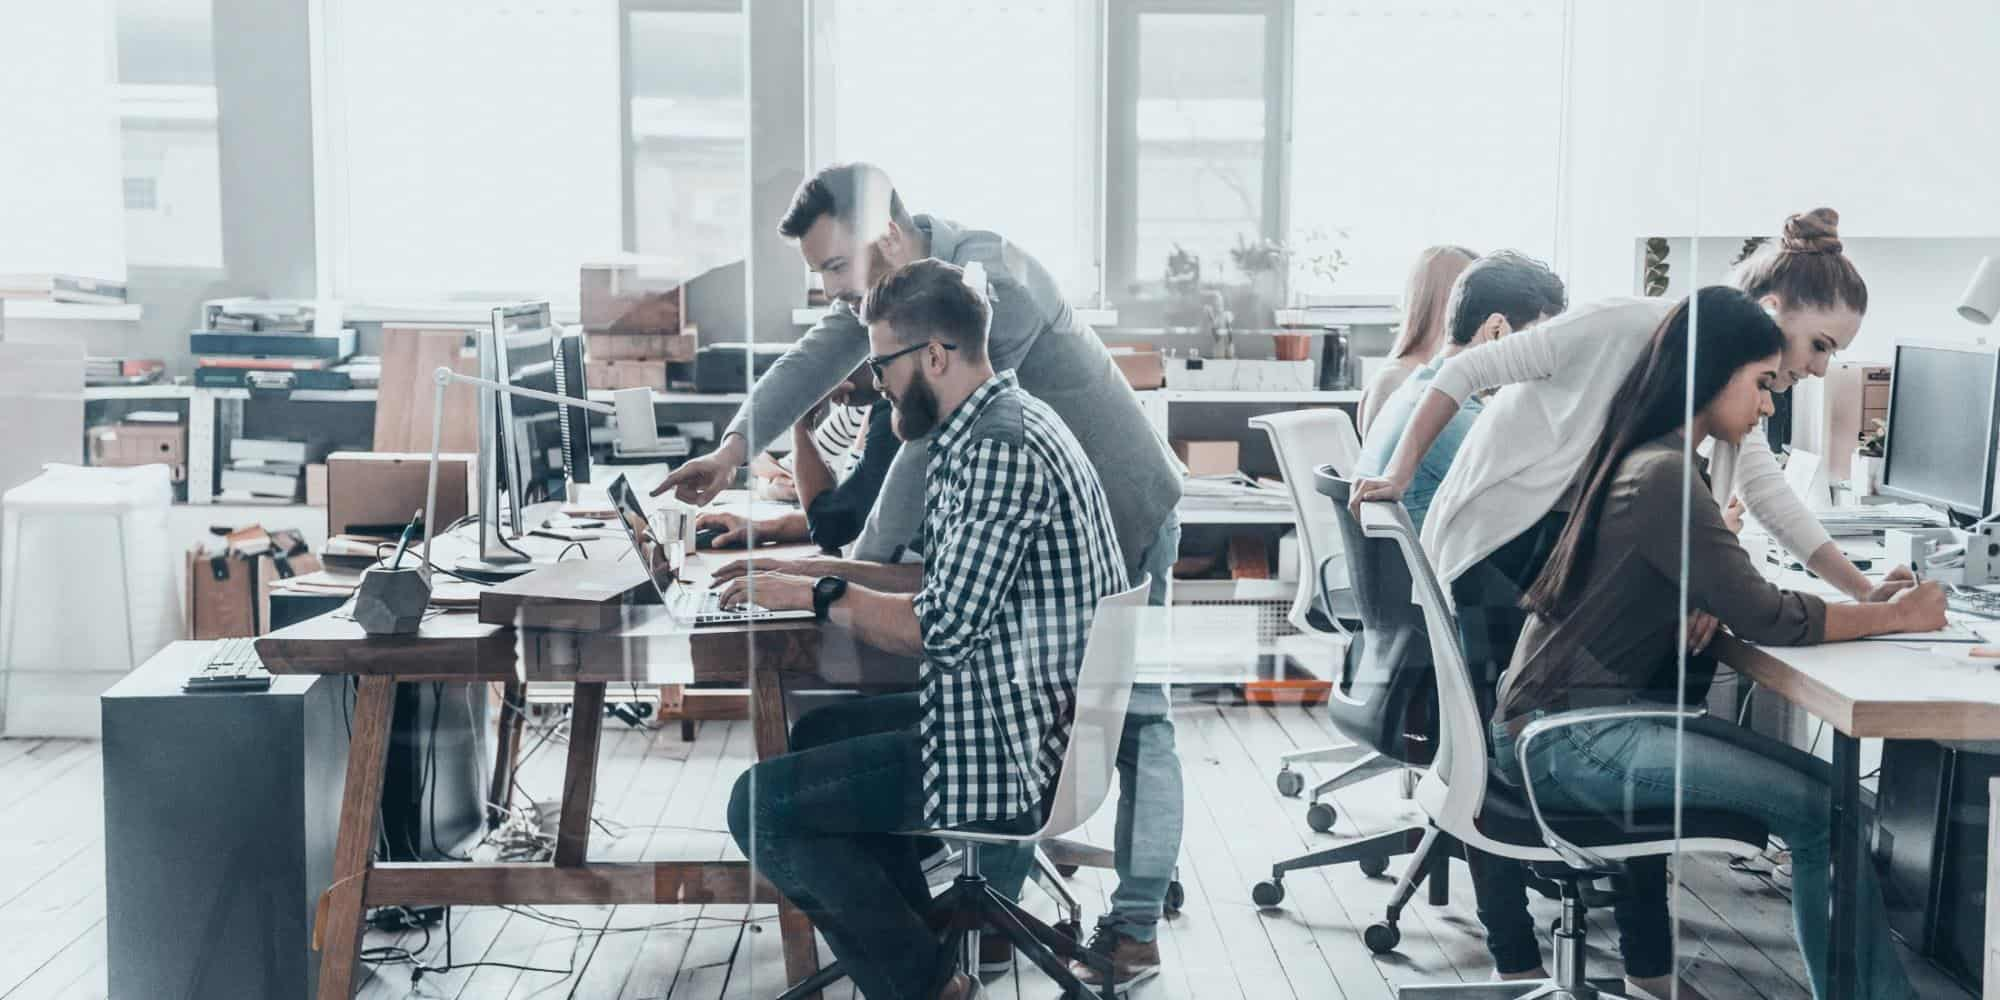 Workers in a modern office space